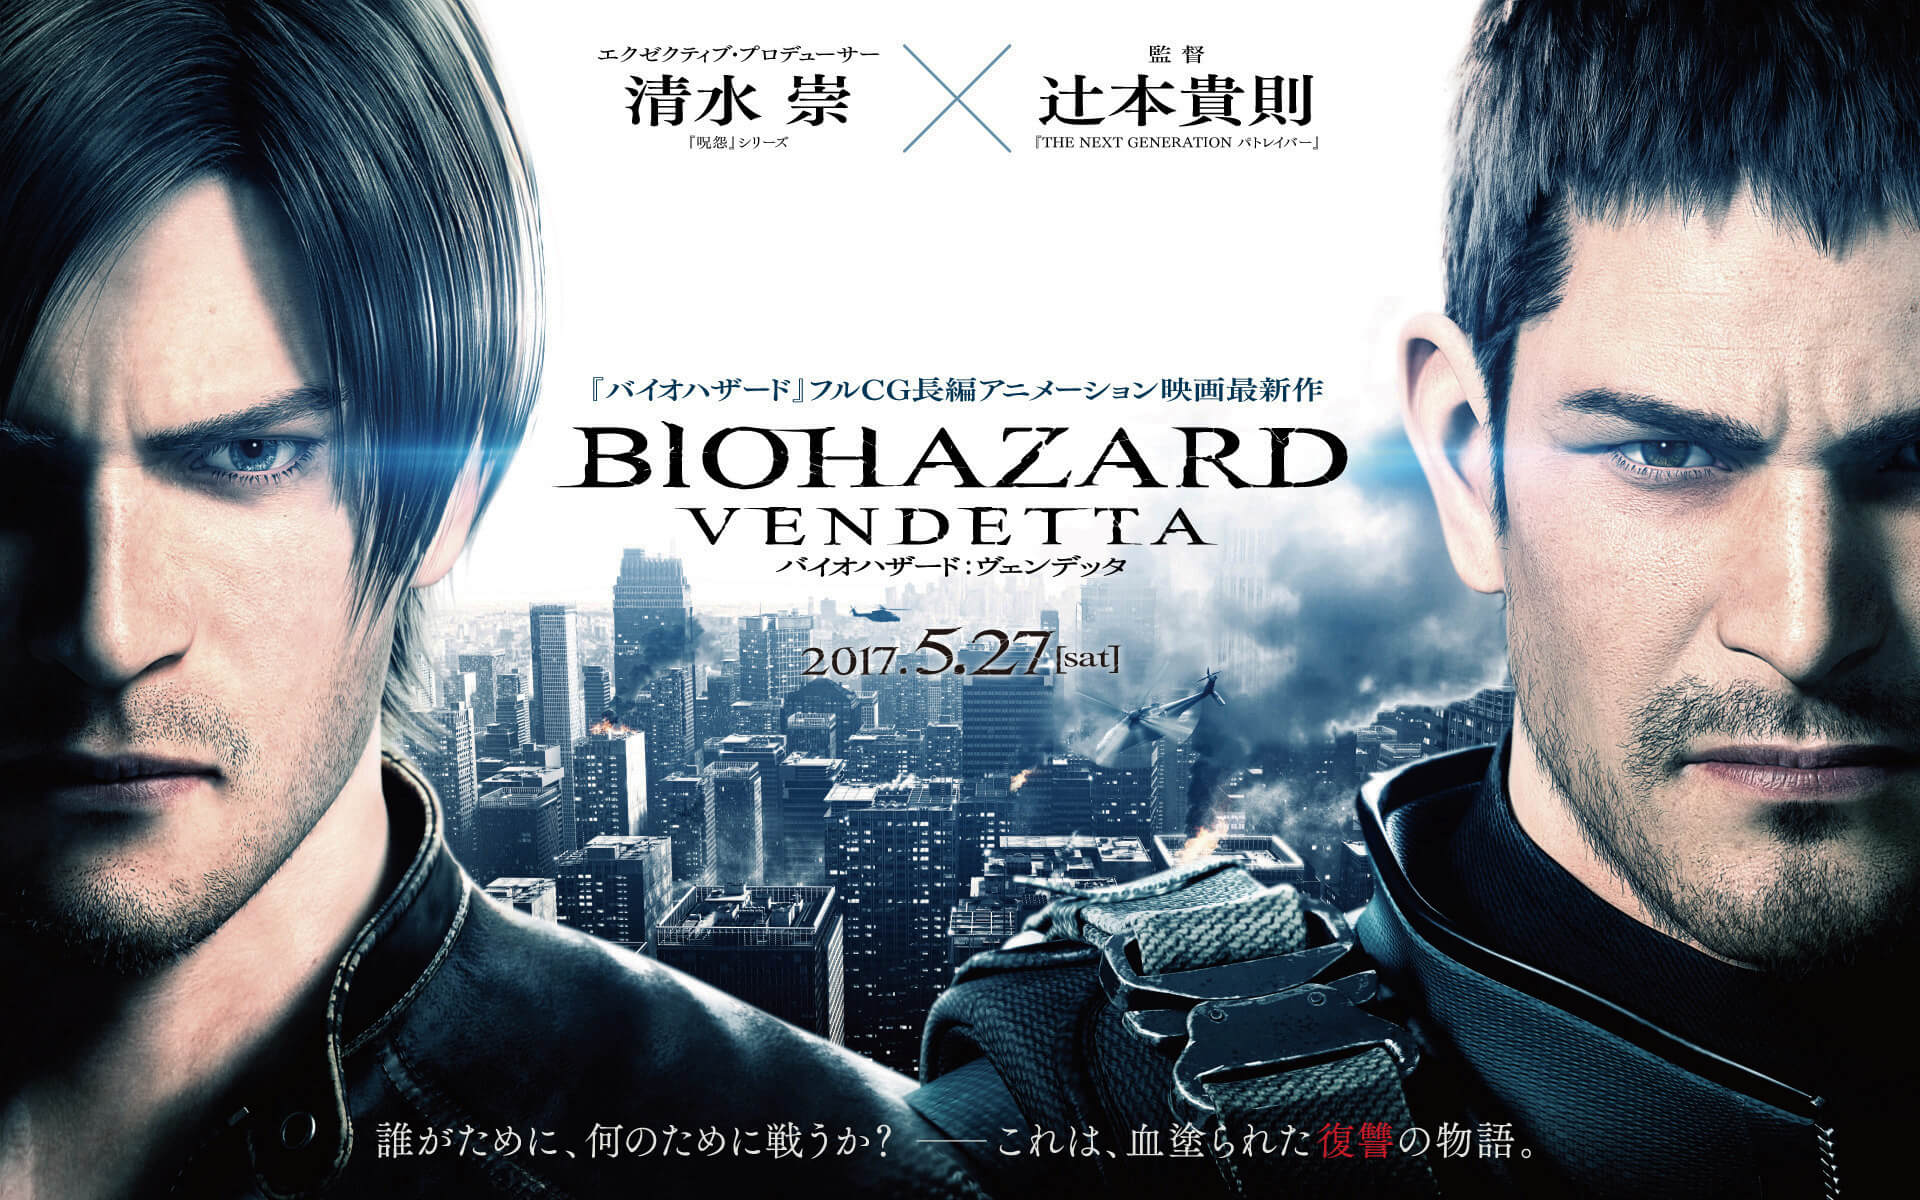 BIOHAZARD VENDETTA【バイオハザード: ヴェンデッタ】 AnOriginal CG Motion Picture 2017